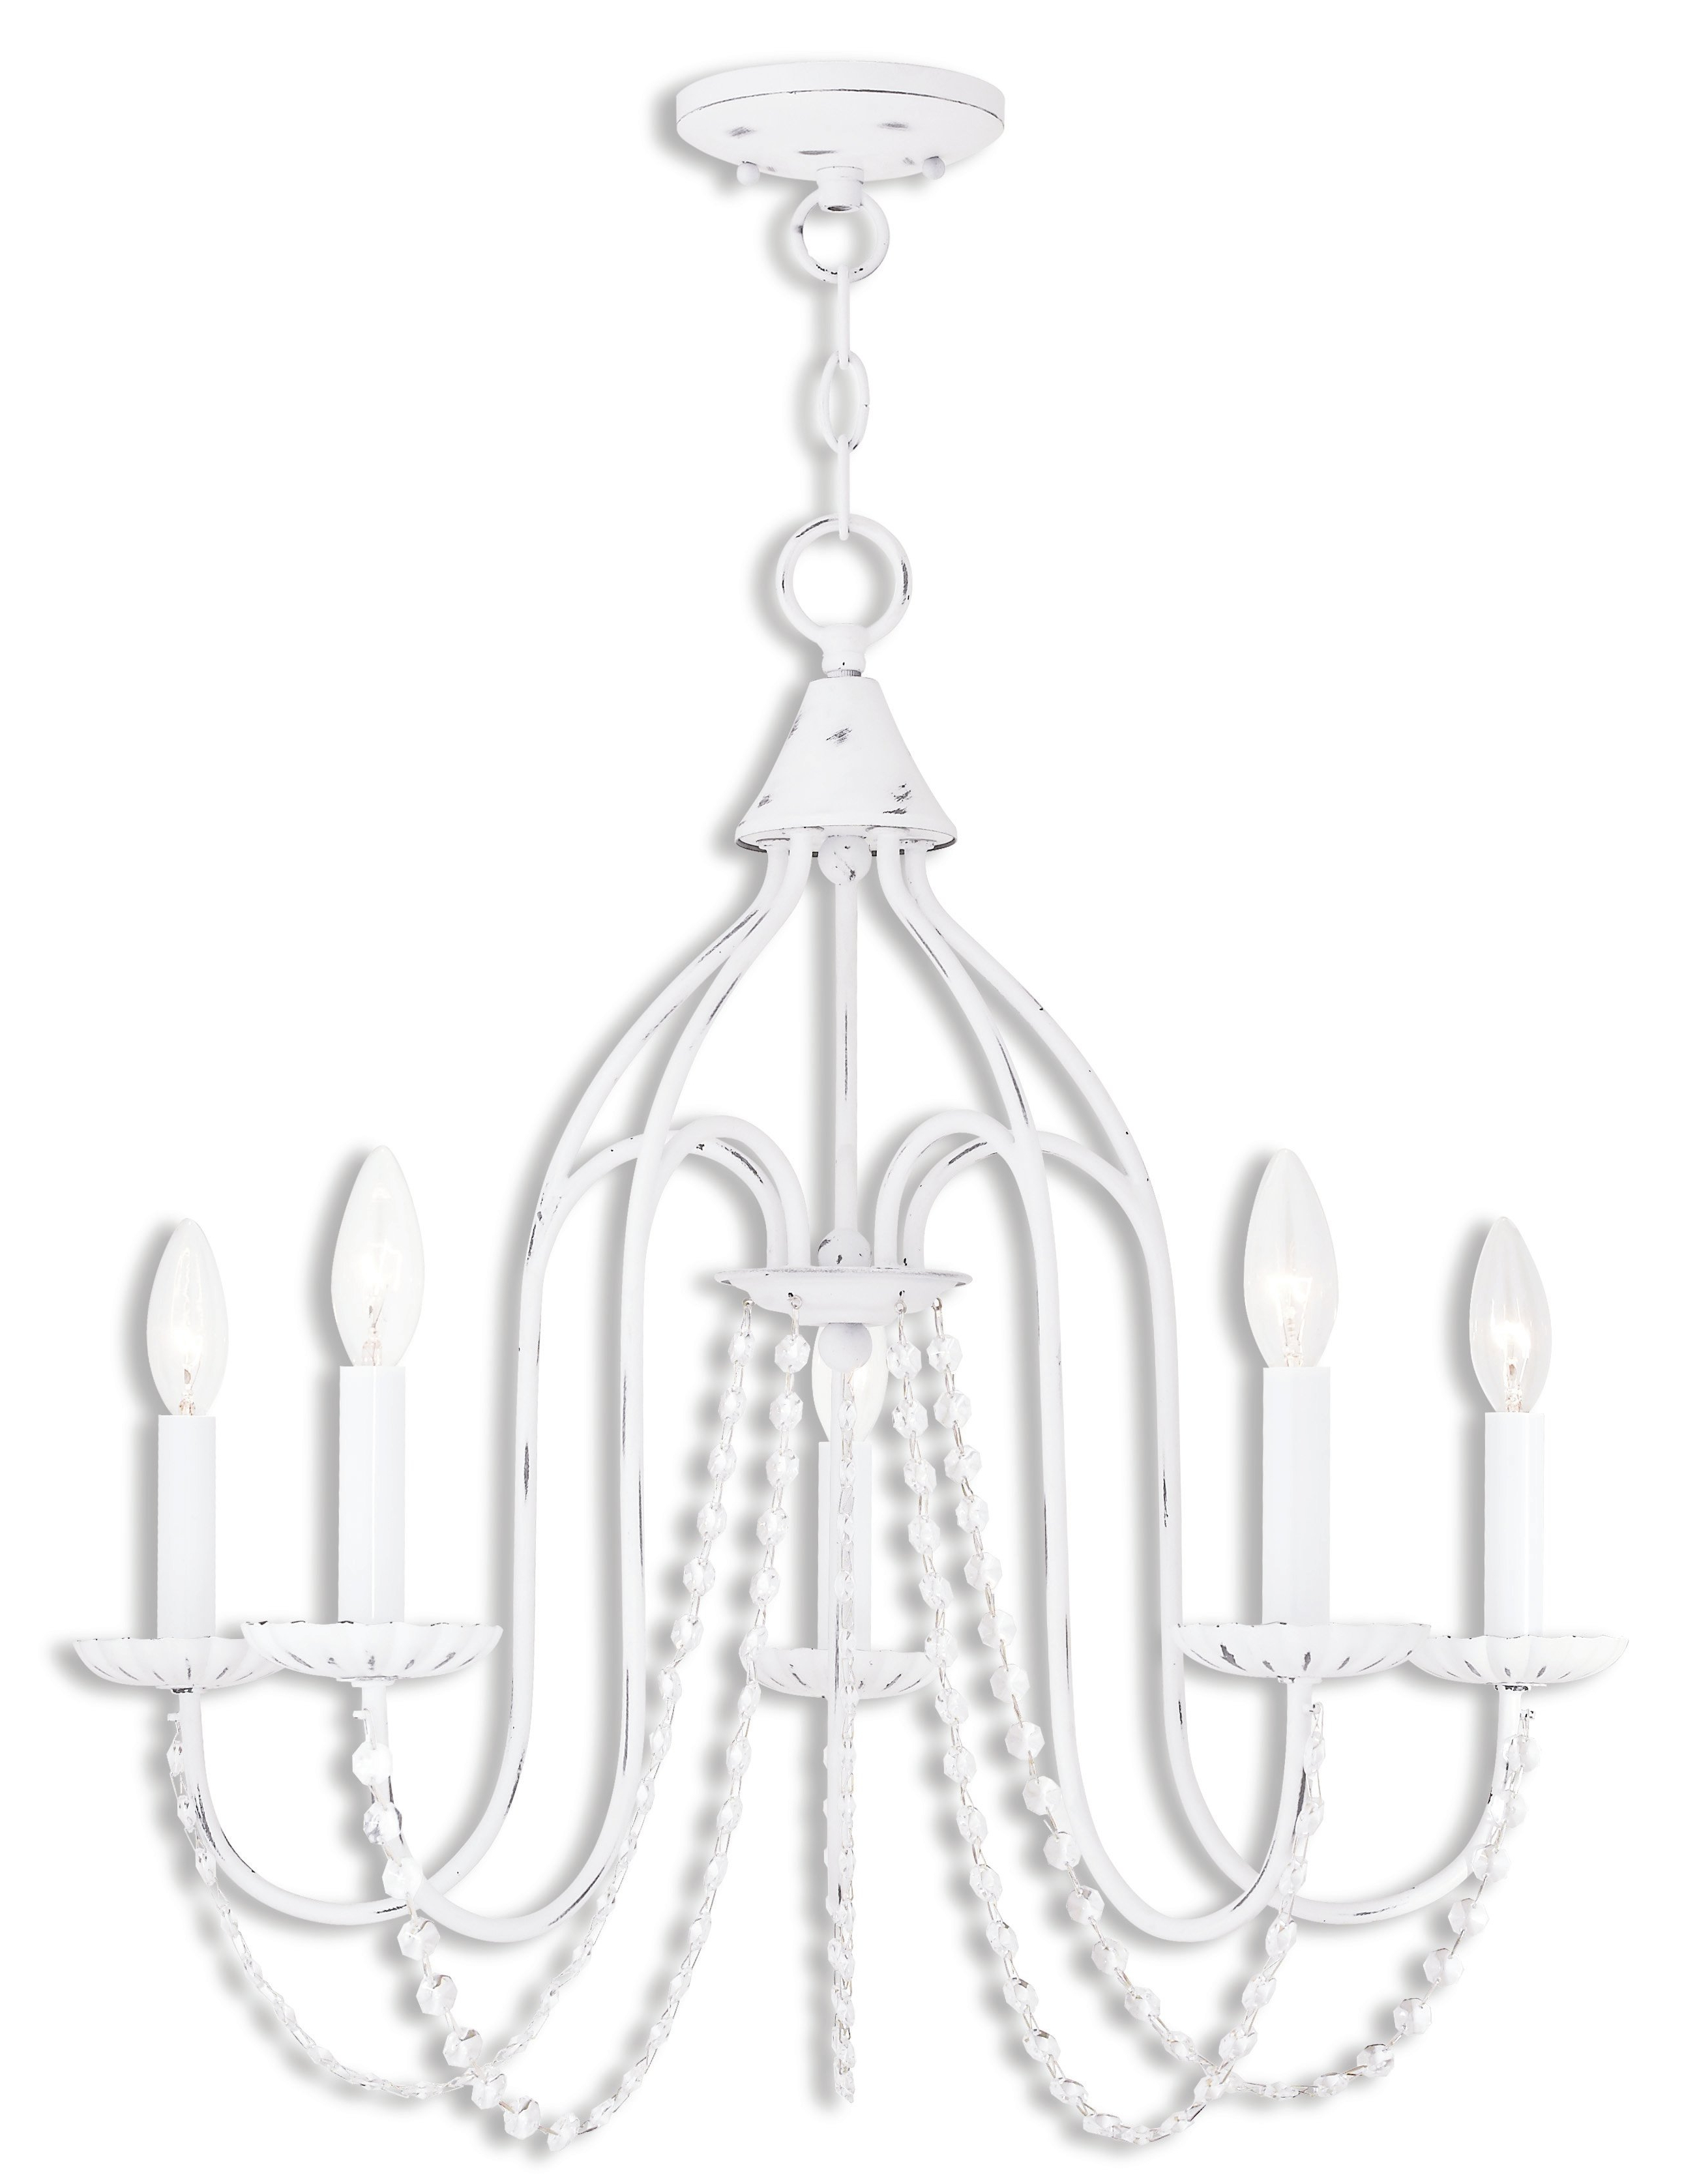 Florentina 5 Light Candle Style Chandelier In Favorite Florentina 5 Light Candle Style Chandeliers (View 5 of 25)